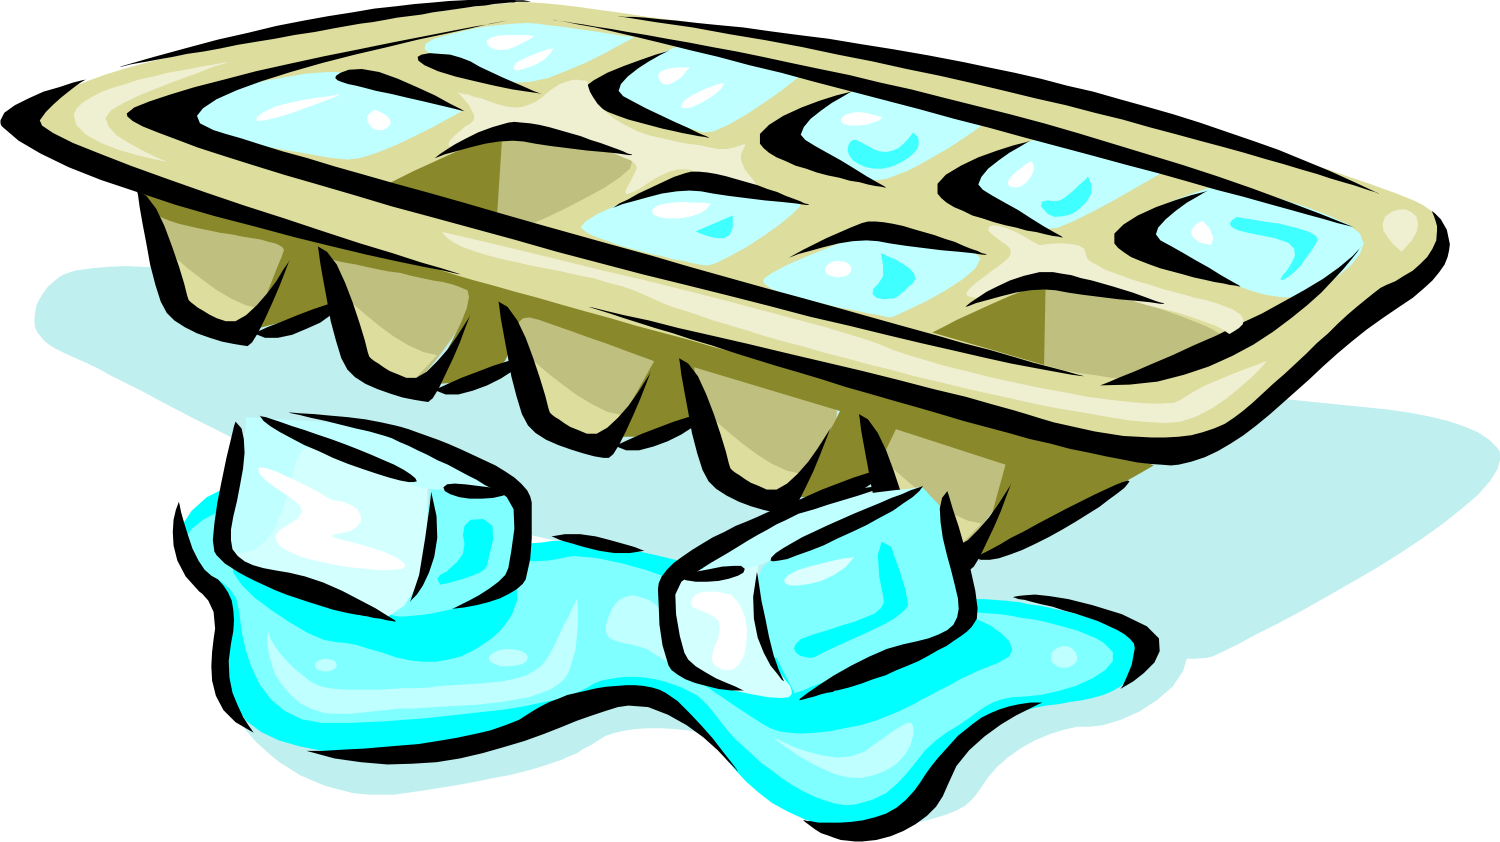 Ice cube tray clipart vector library Displaying 18> Images For Ice Cube Tray clipart free image vector library